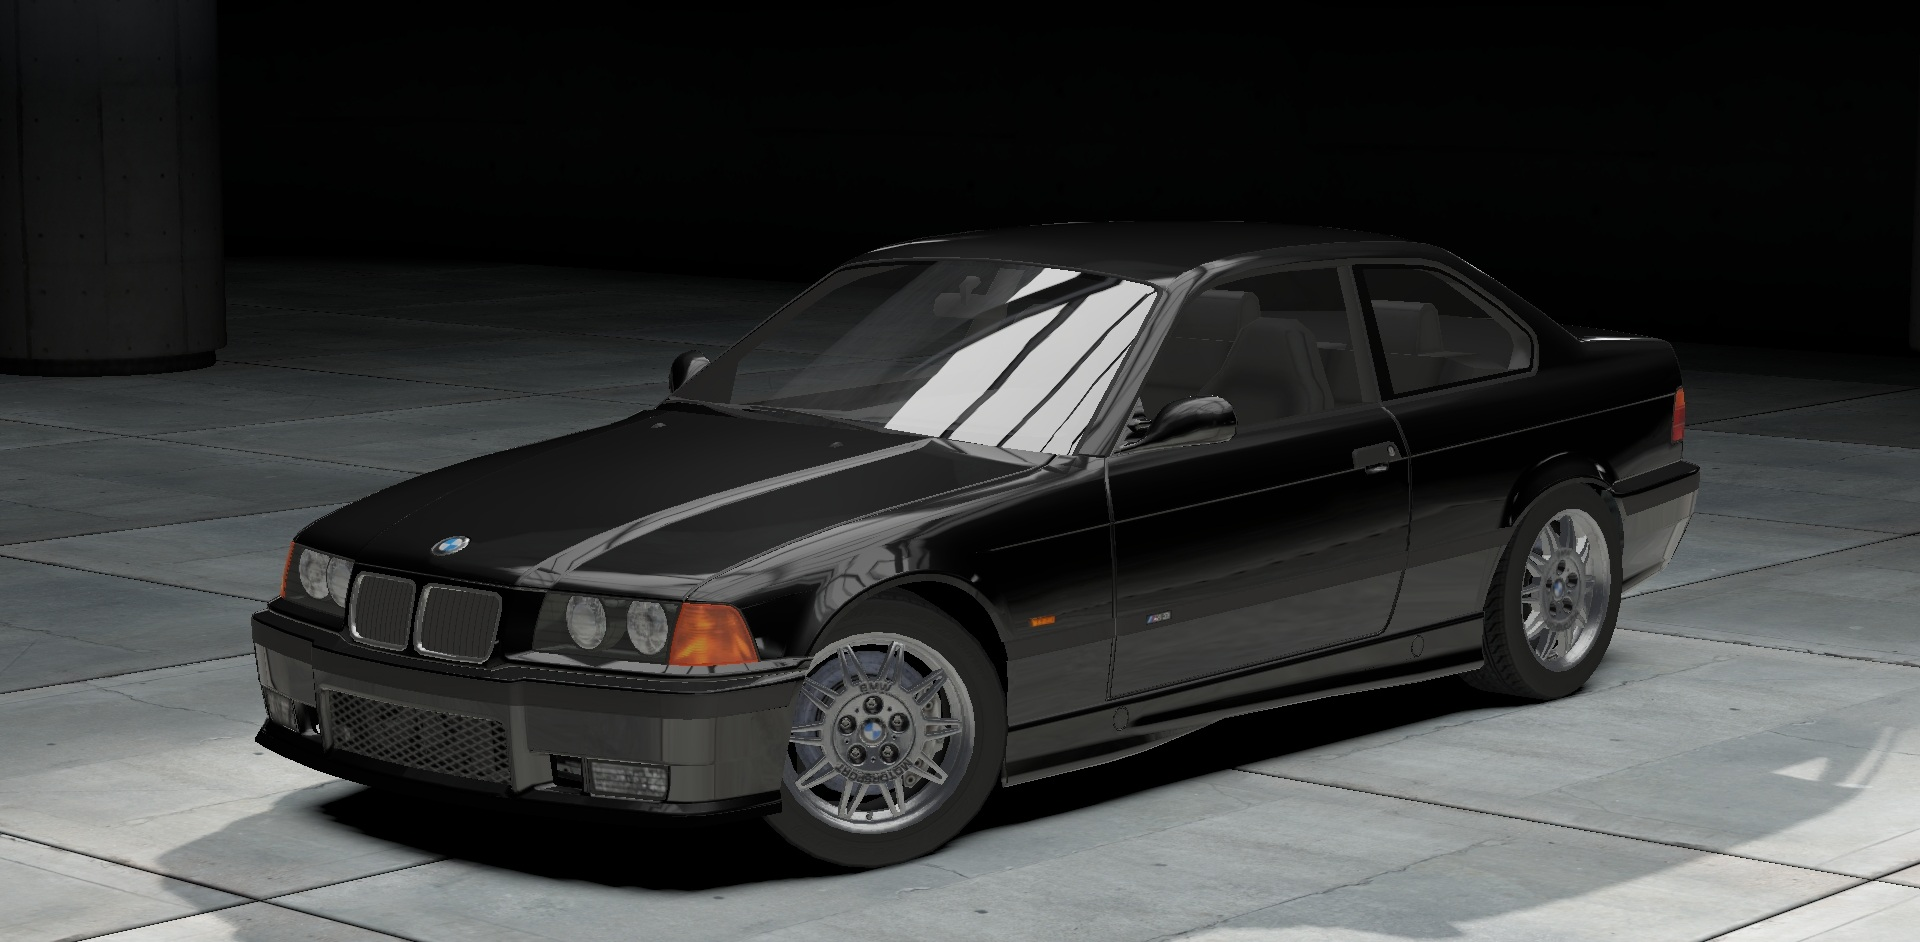 bmw m3 e36 need for speed wiki fandom powered by wikia. Black Bedroom Furniture Sets. Home Design Ideas